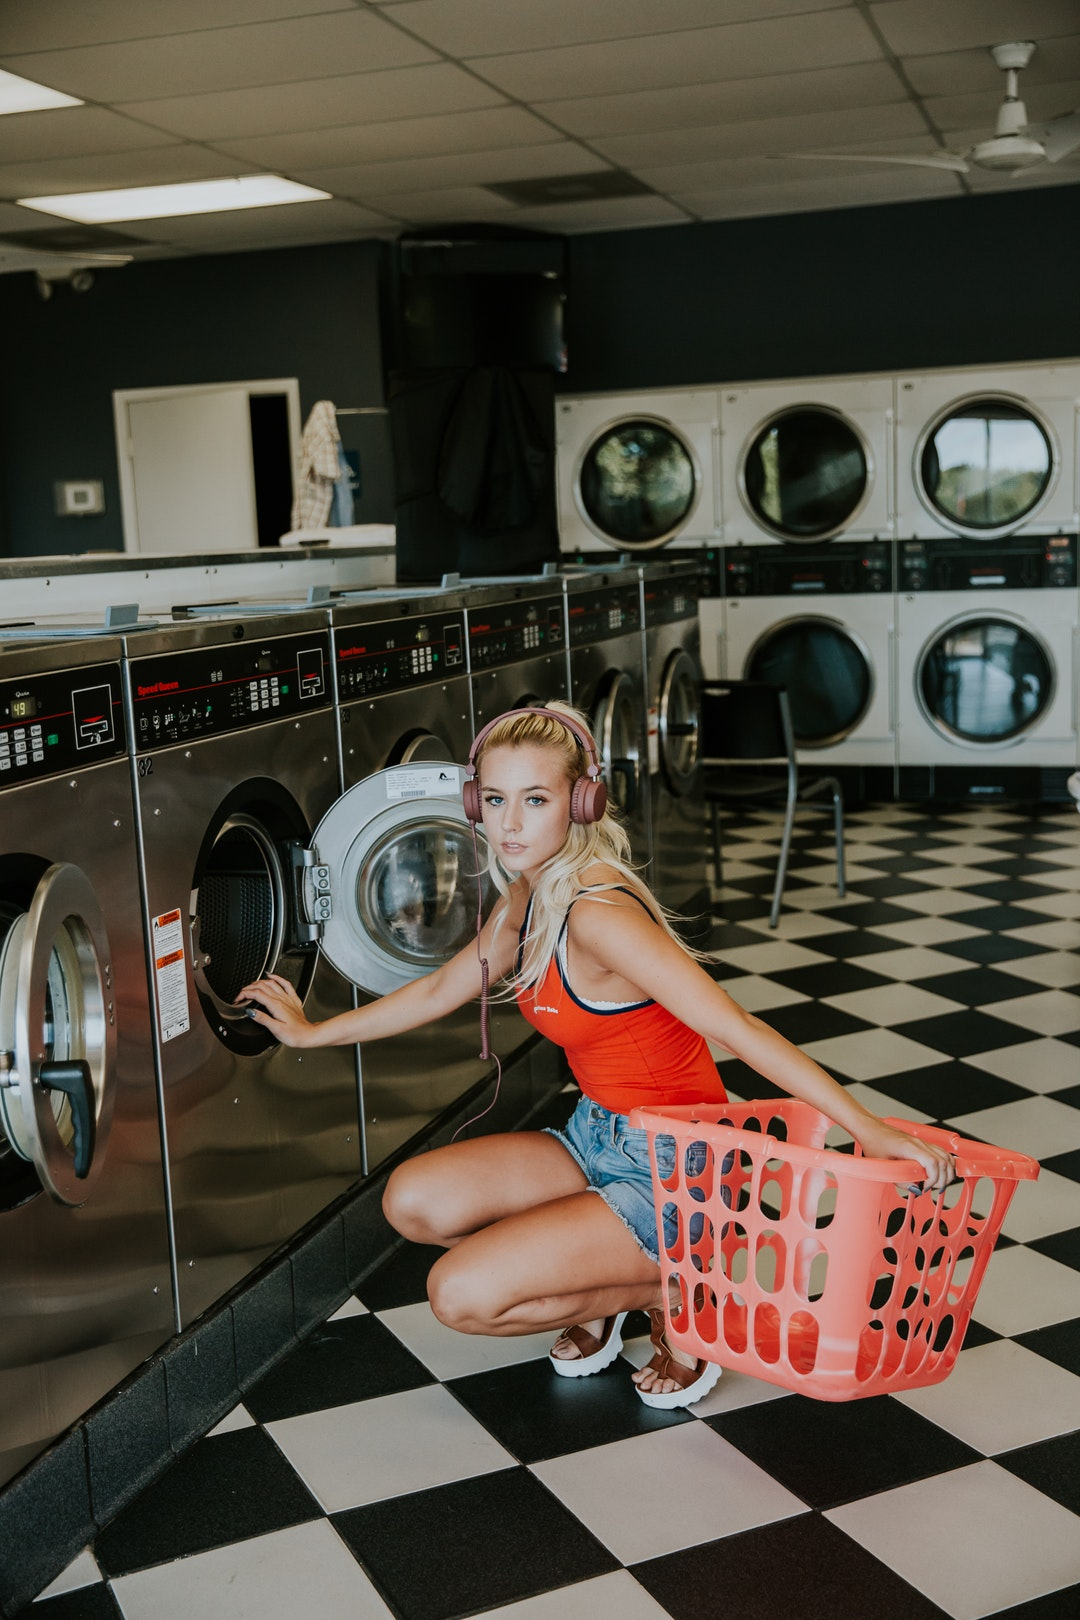 A blonde woman in headphones crouching next to a laundromat with a laundry basket